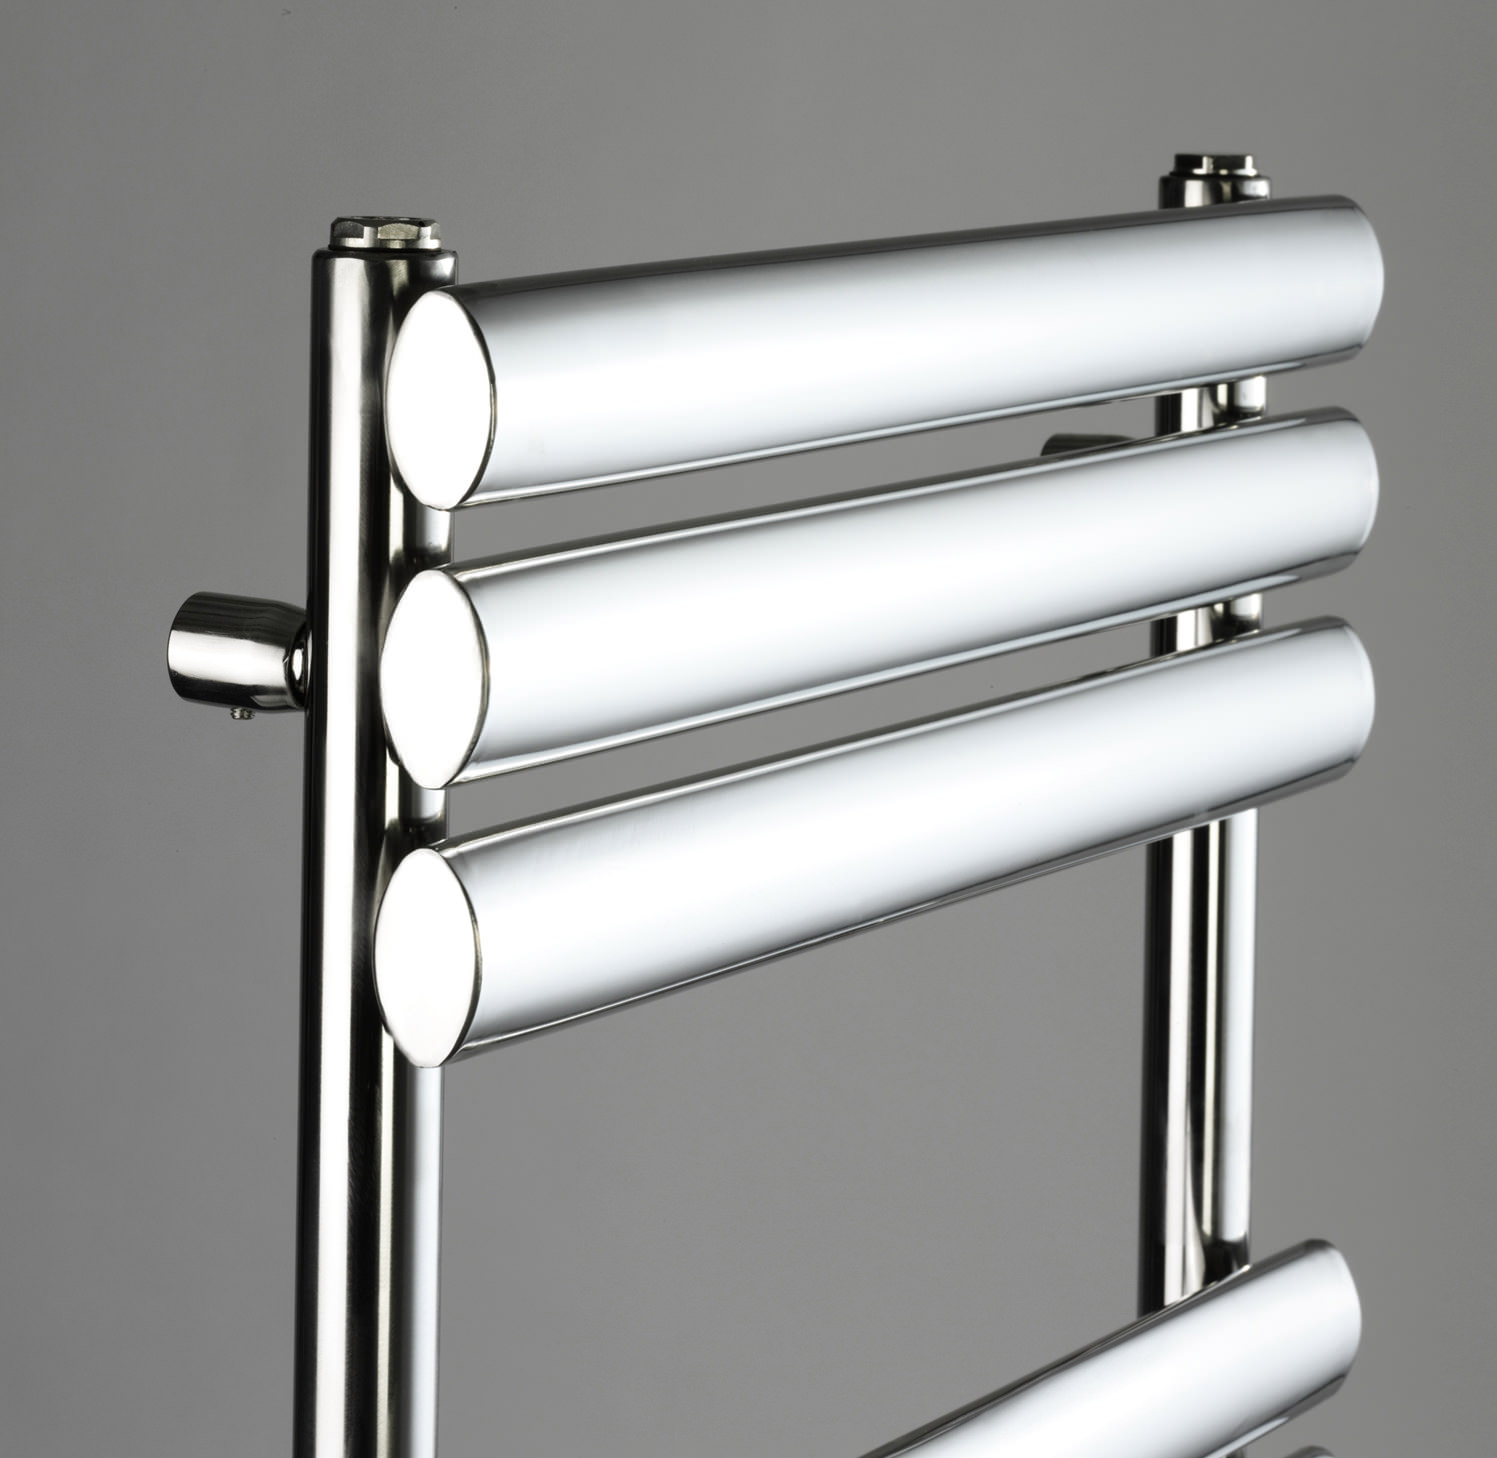 DQ Heating Cove STR 500 x 1120mm Stainless Steel Towel